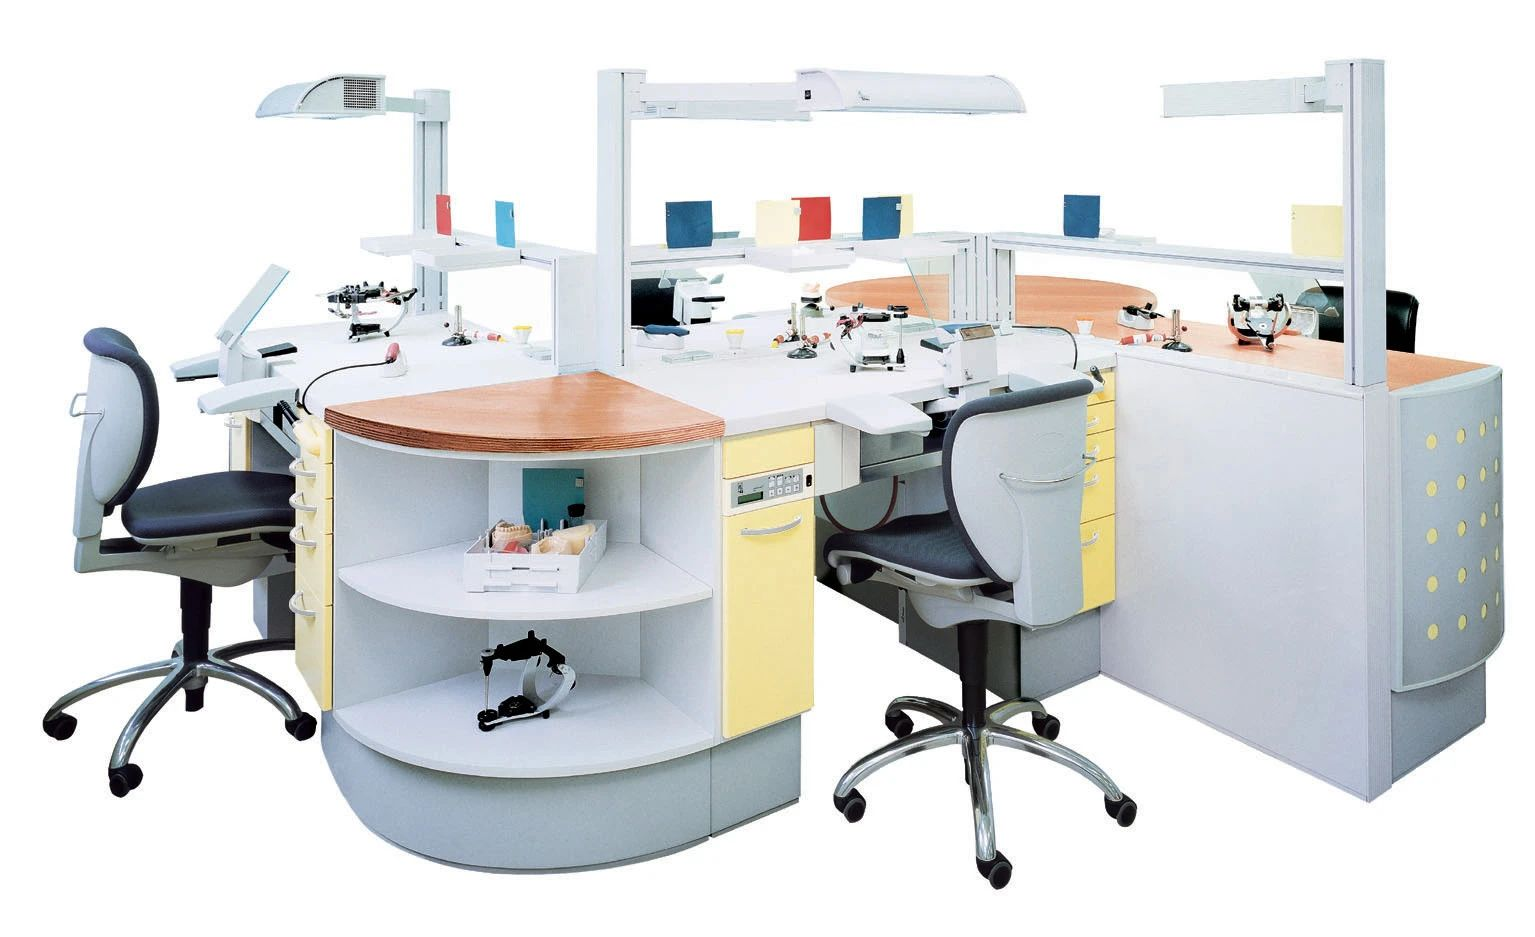 MASTERspace Laboratory Equipment